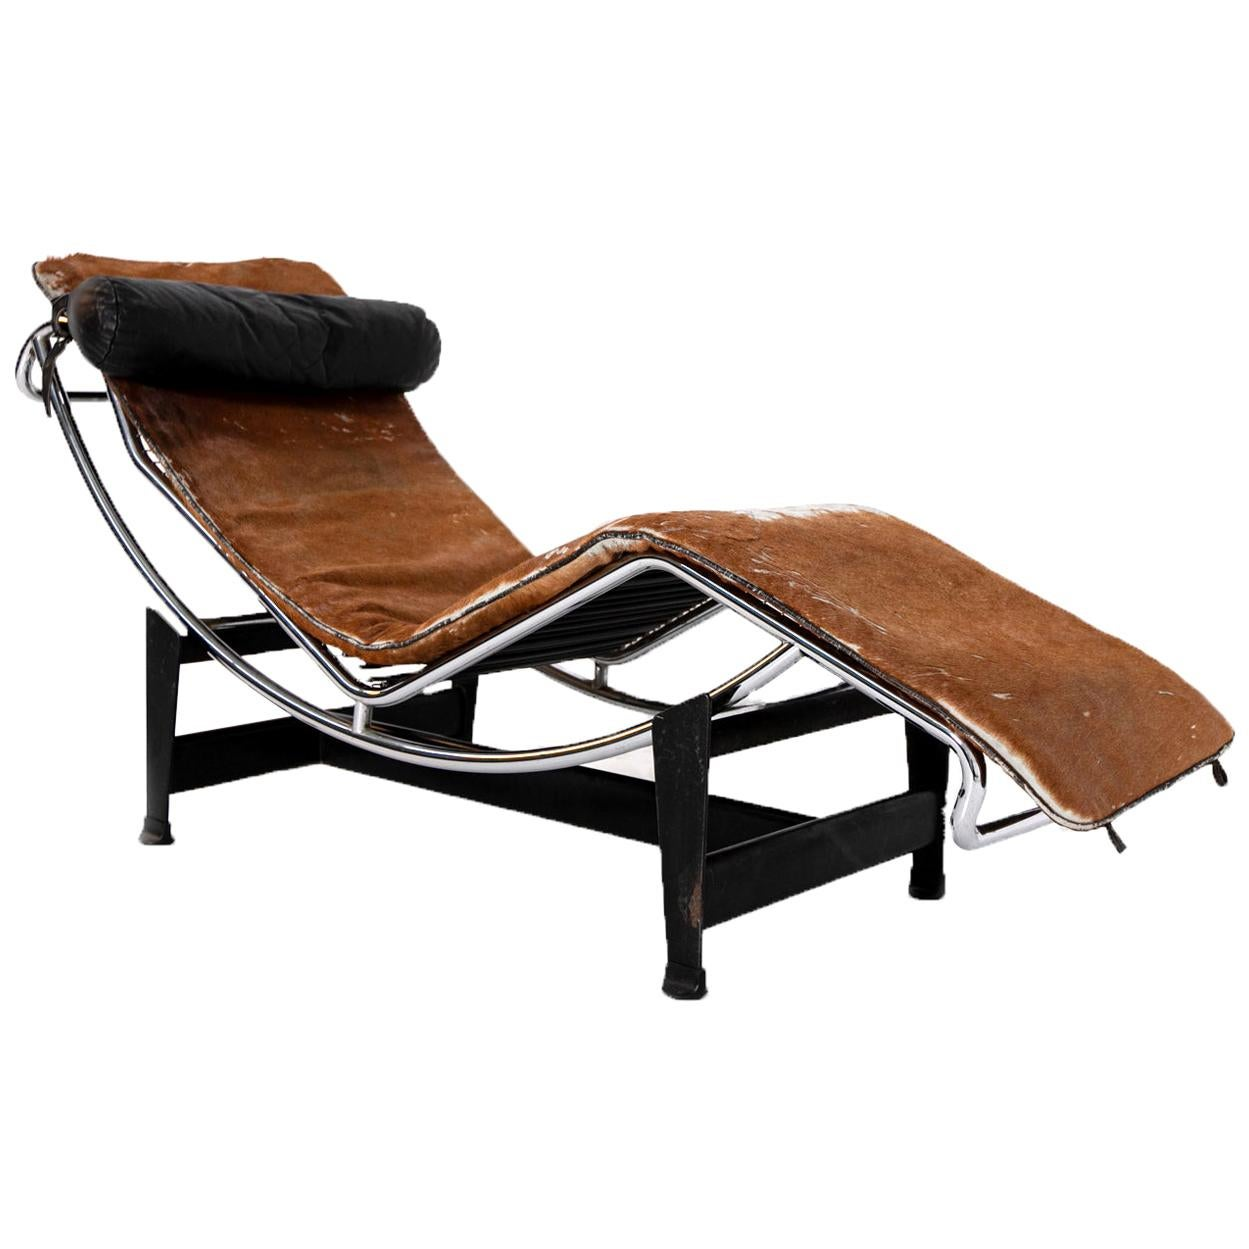 Chaise Longue LC4 by Le Corbusier, C. Perriand, P. Jeanneret for Cassina